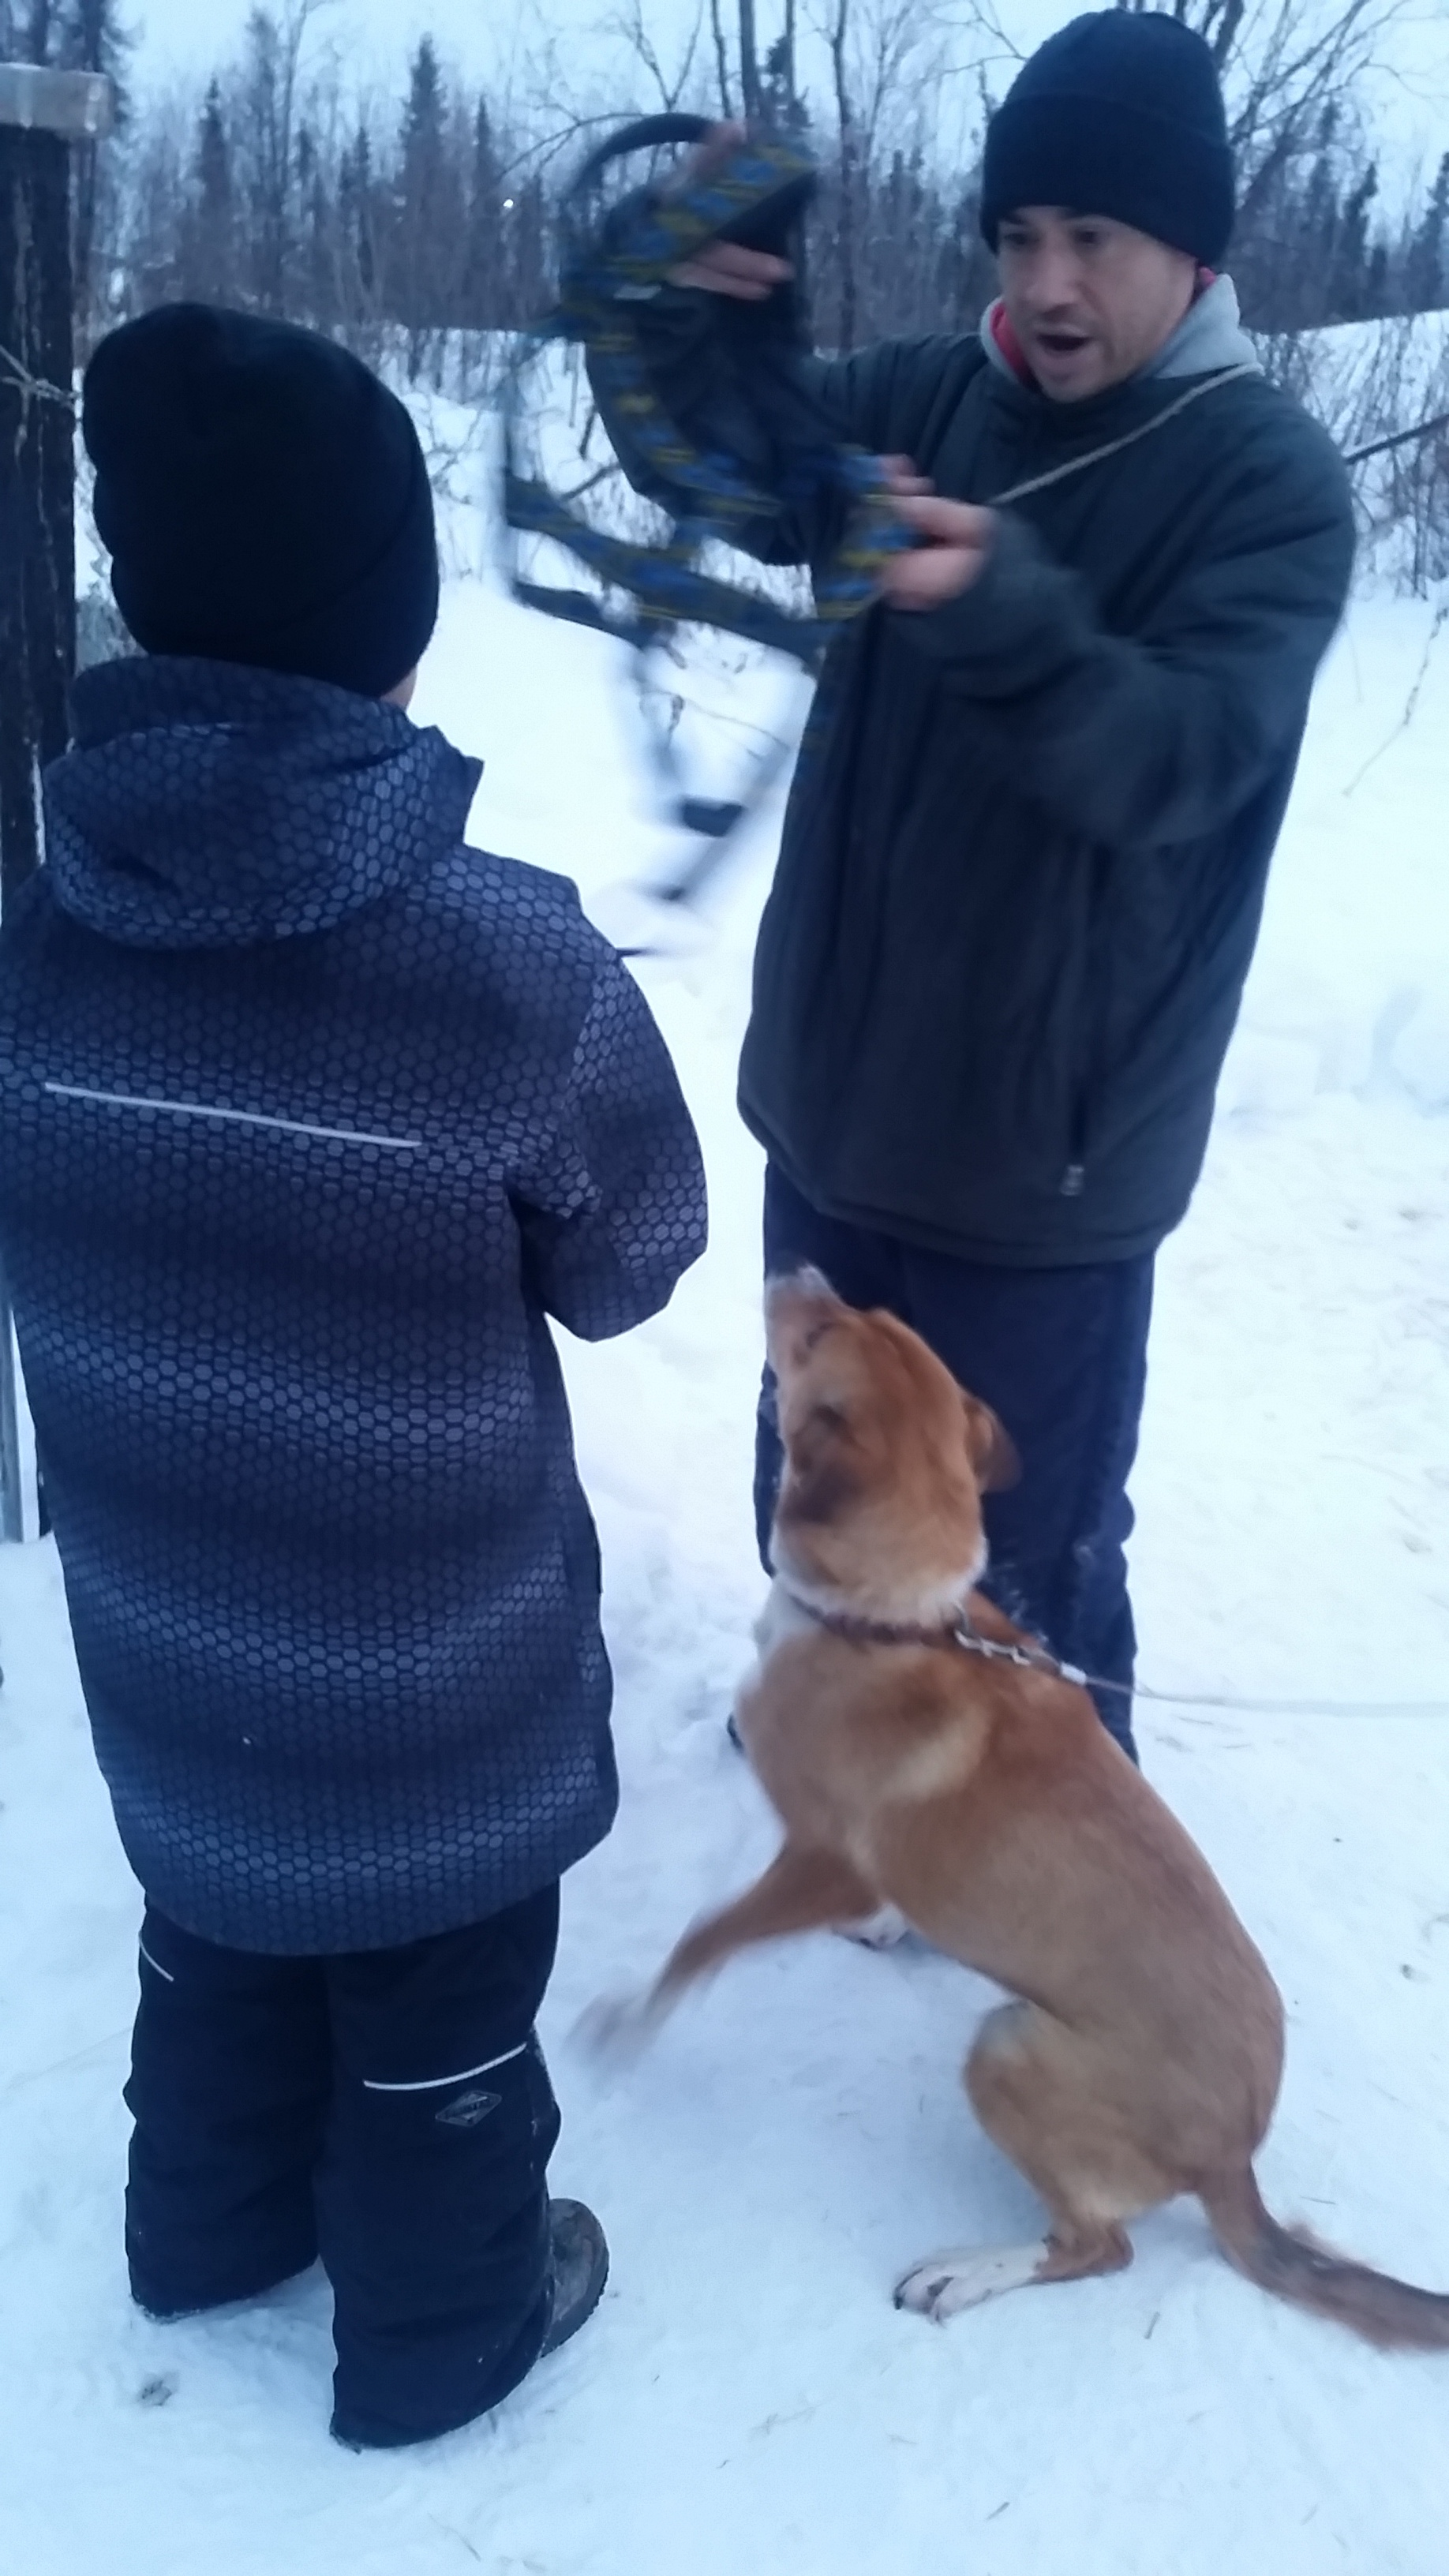 Dog musher teacher Charley Wofford, shows students how to harness a dog.